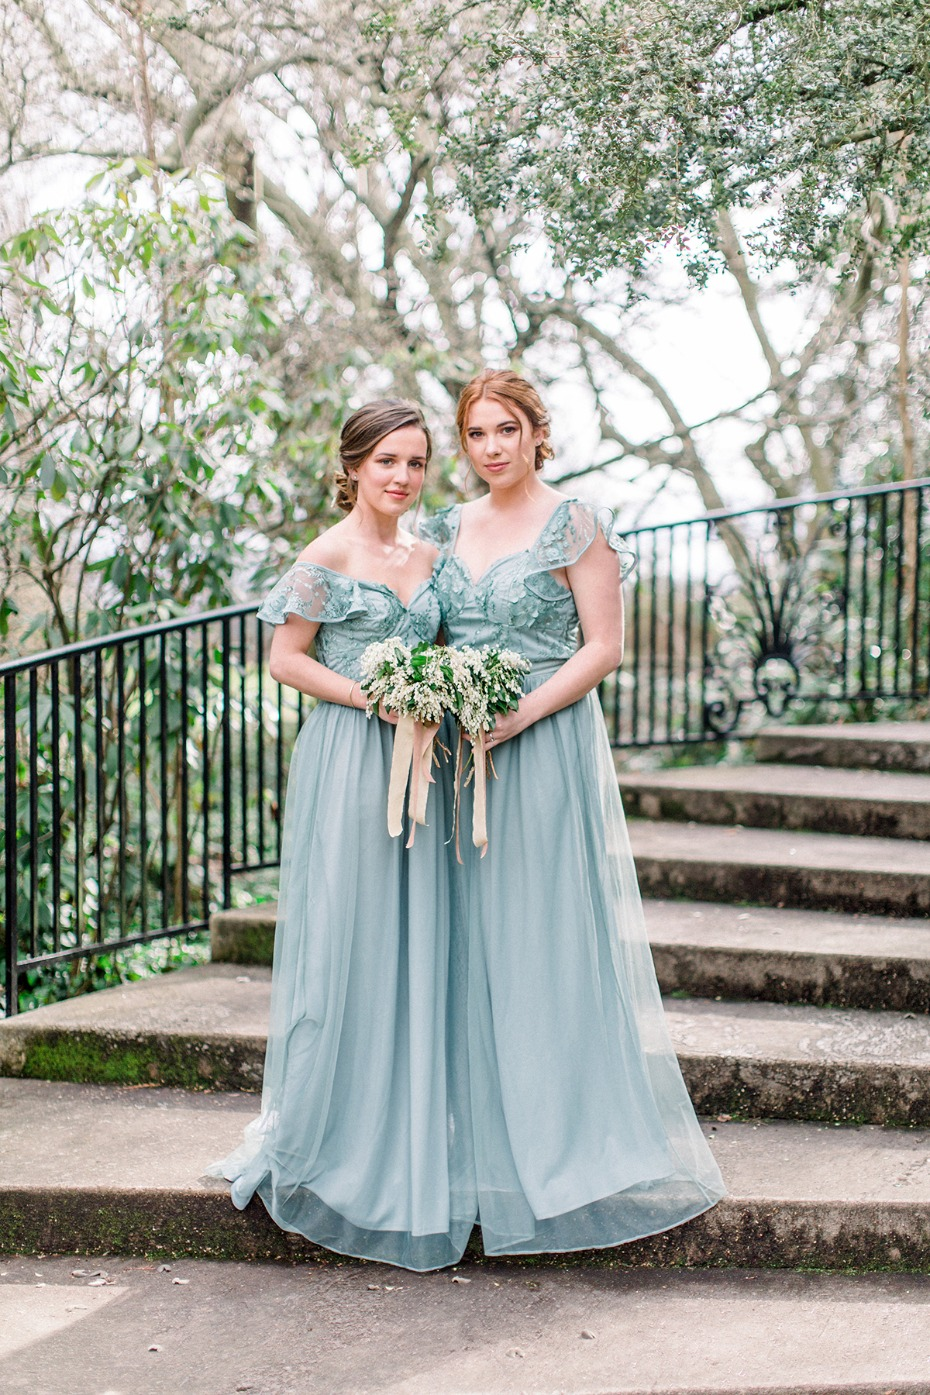 ASOS bridesmaid dresses from Amelia Rose